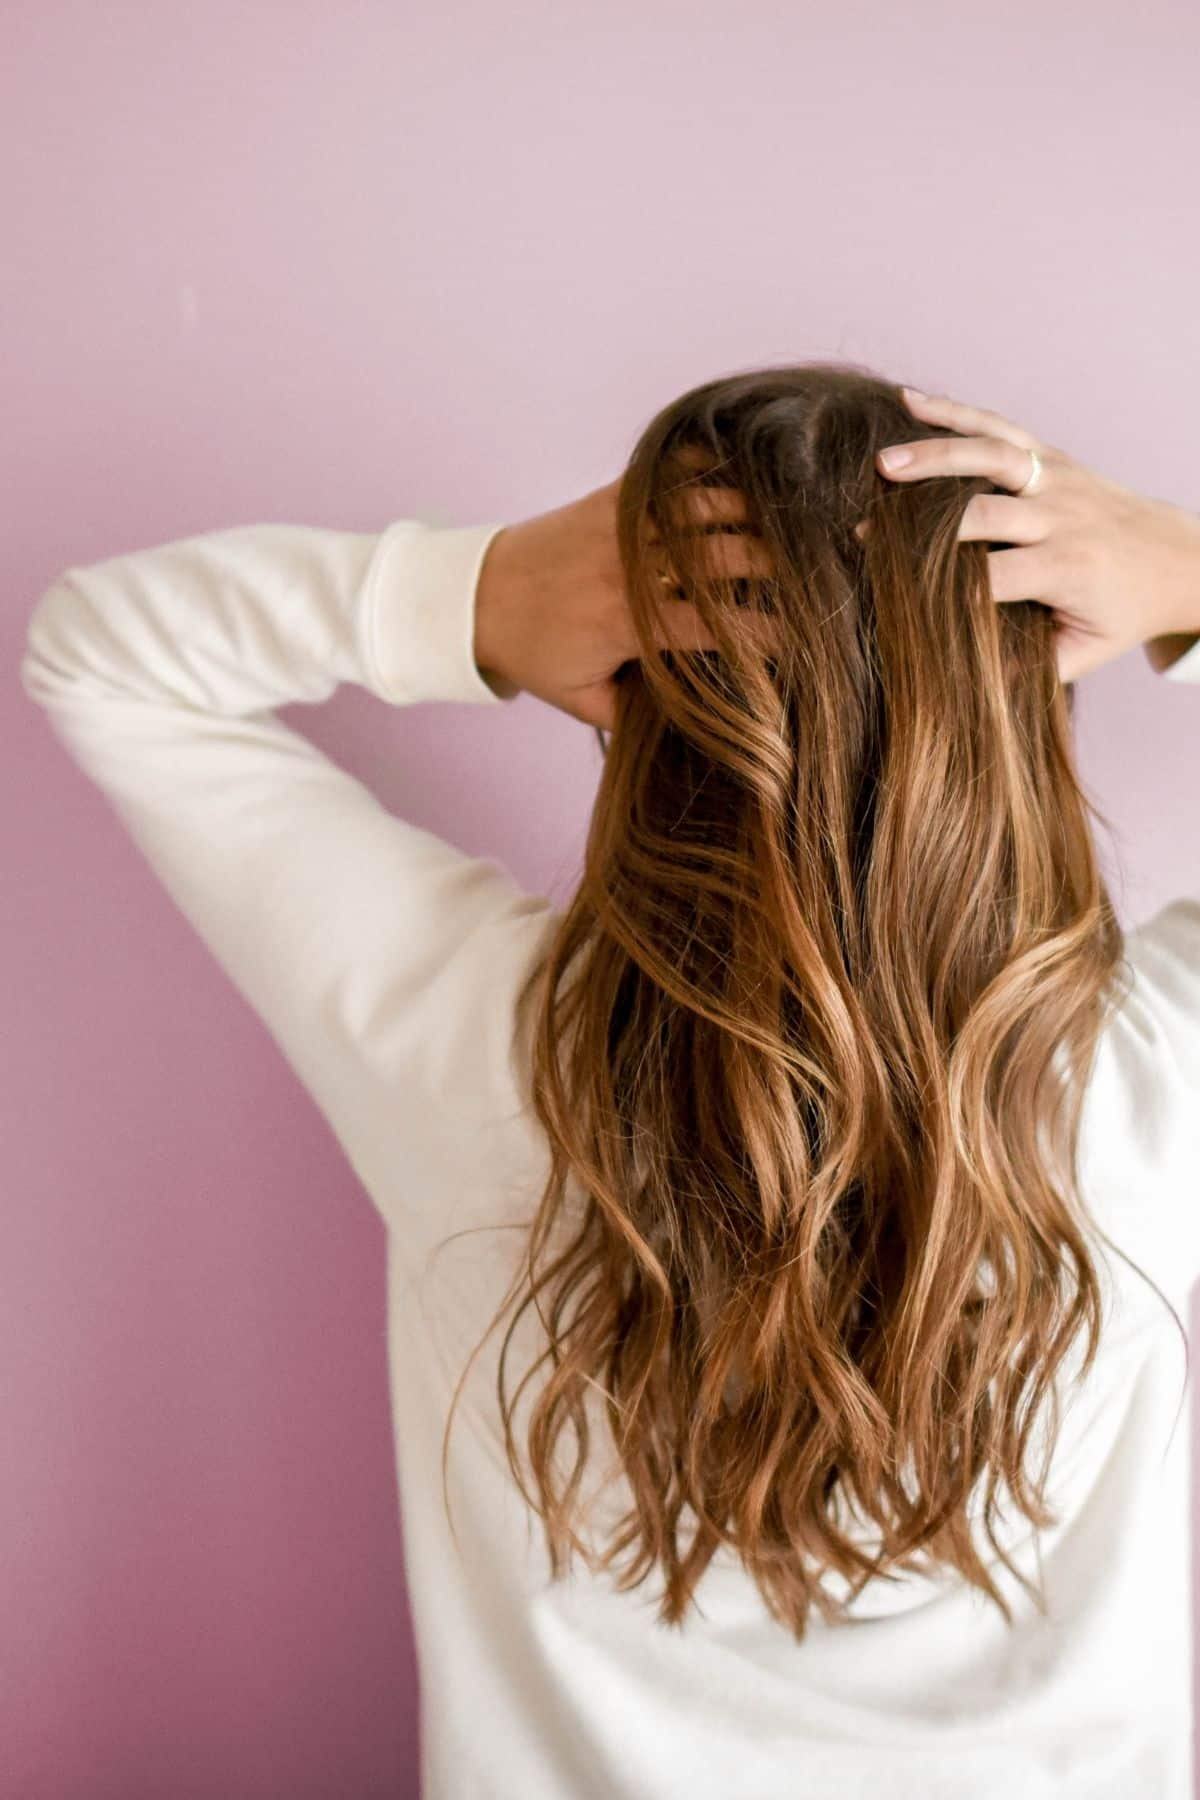 woman with long brown hair holding her head